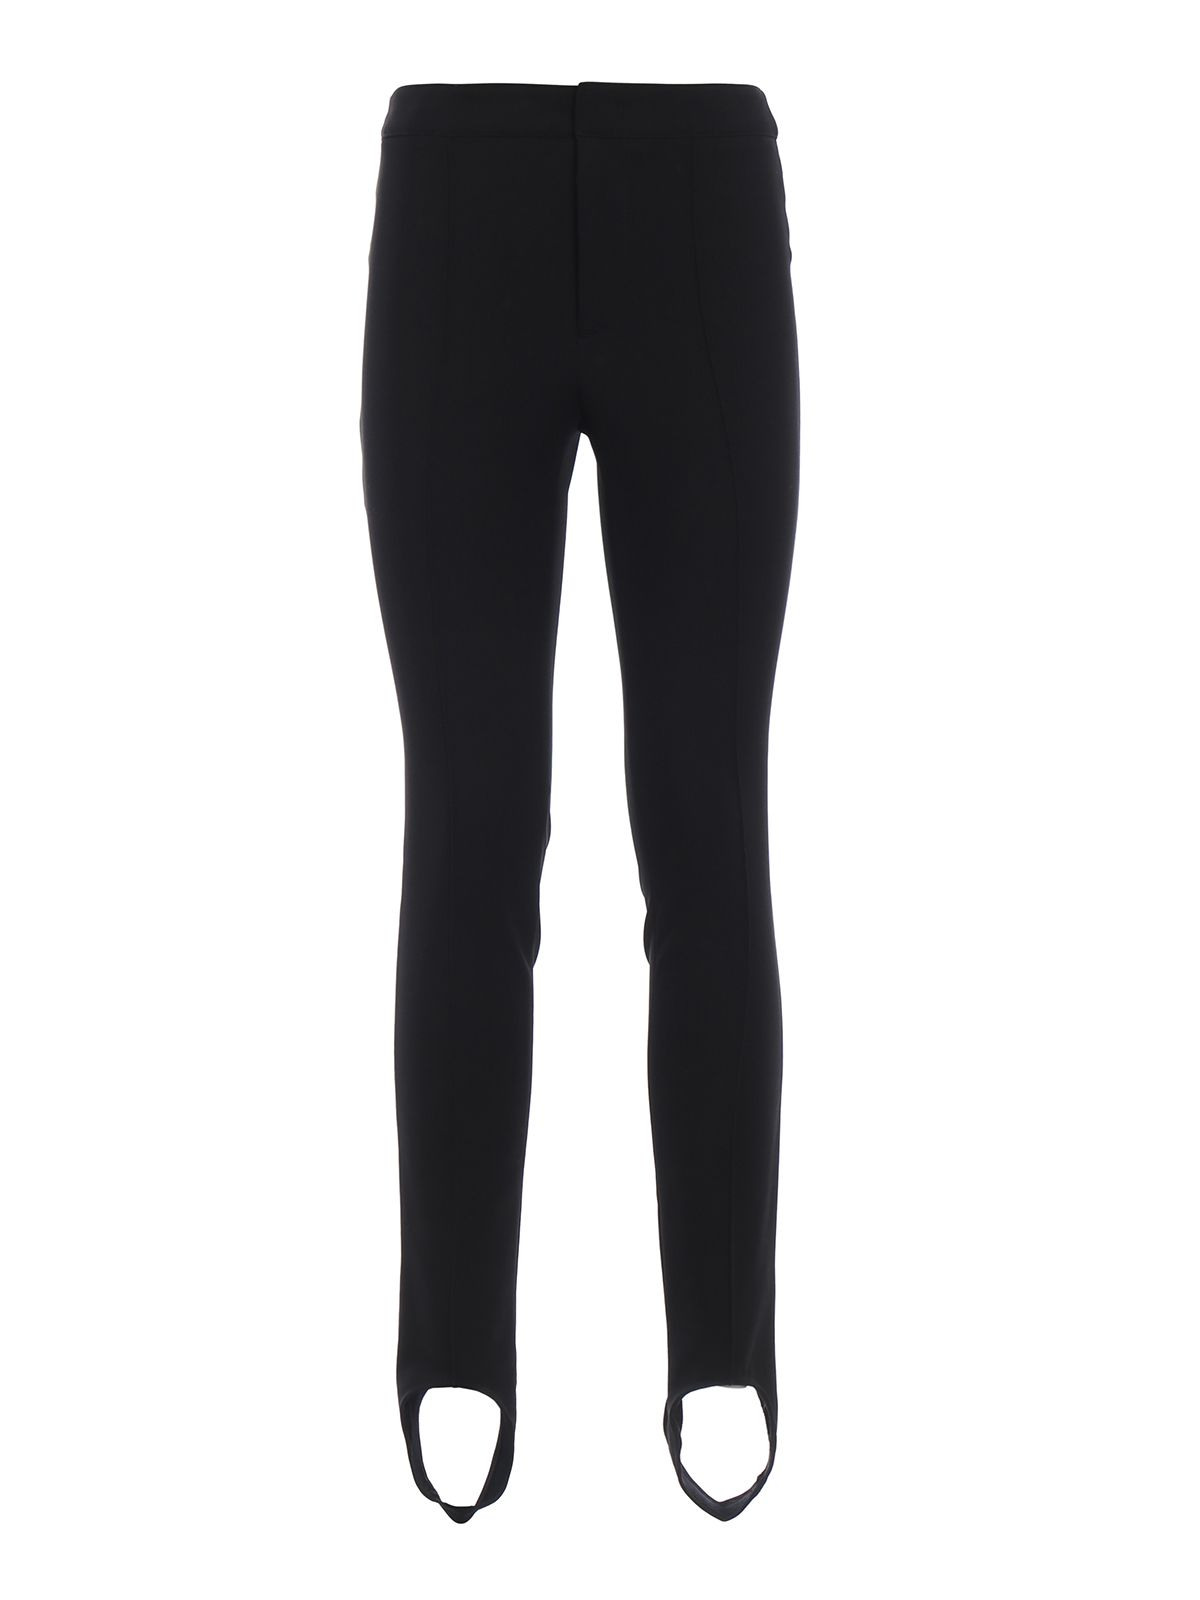 Moncler Grenoble Stirrup Trousers